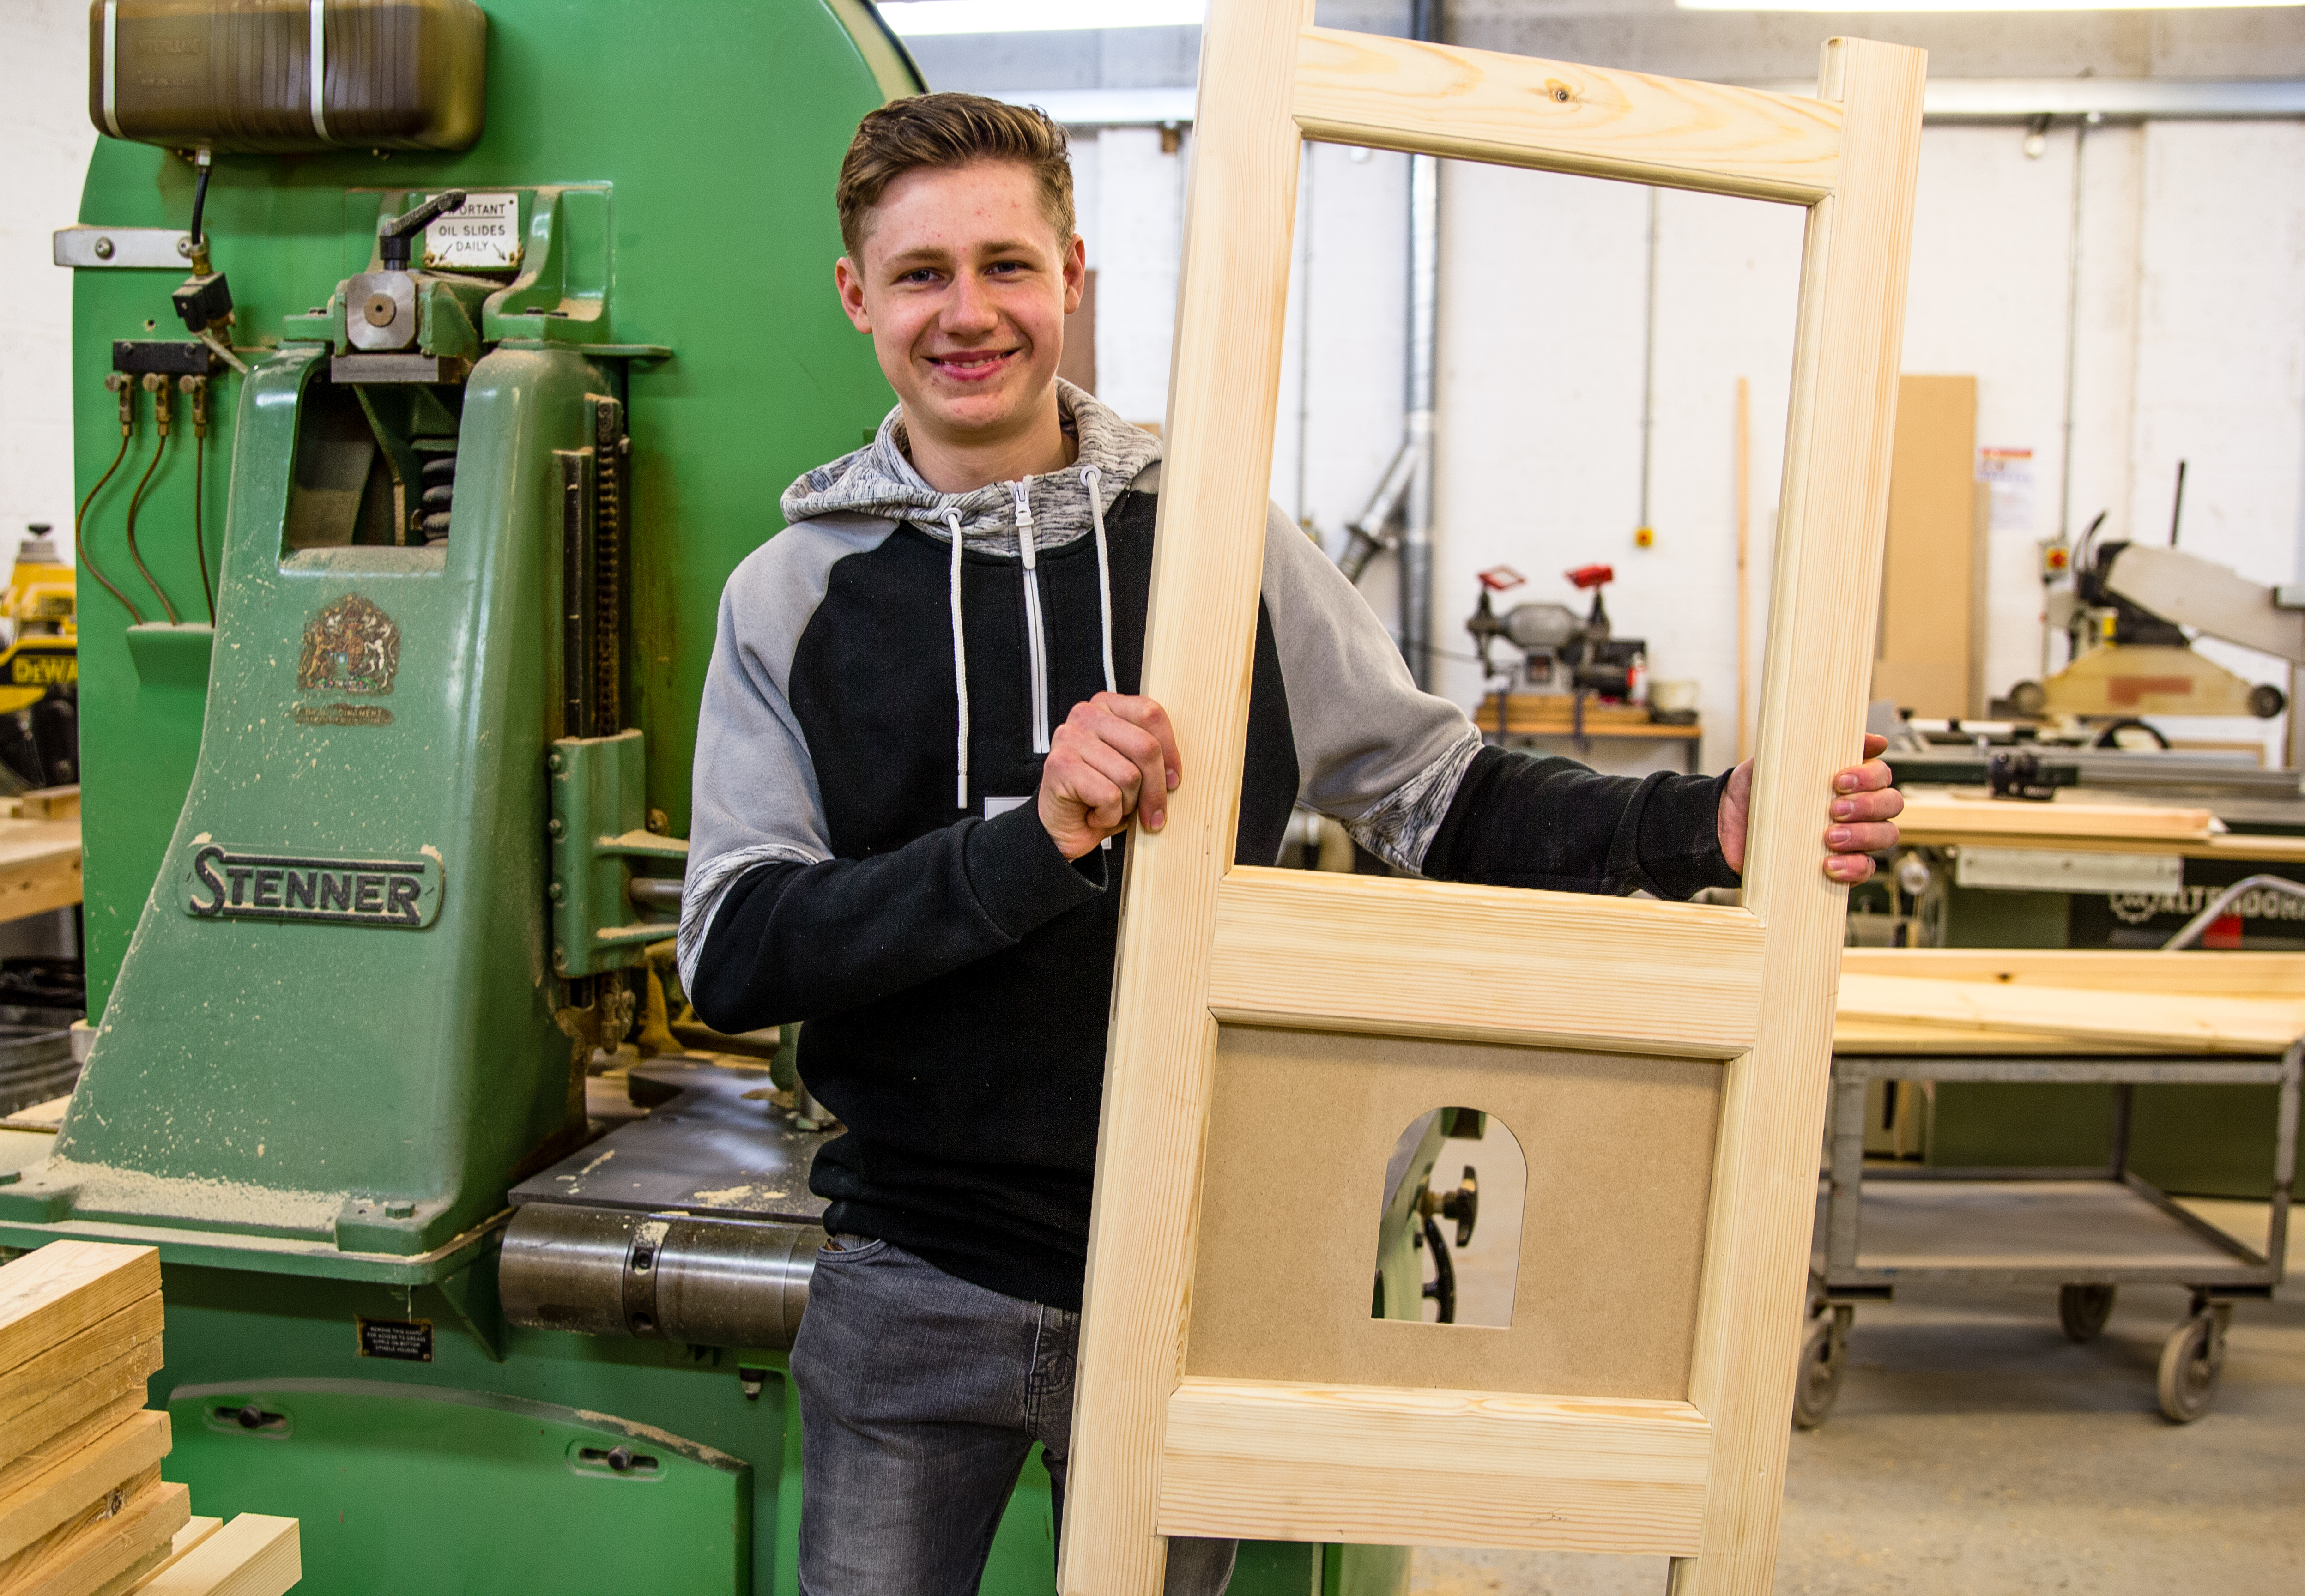 Smiling male student in front of green machine while holding a large, rectangular wooden item